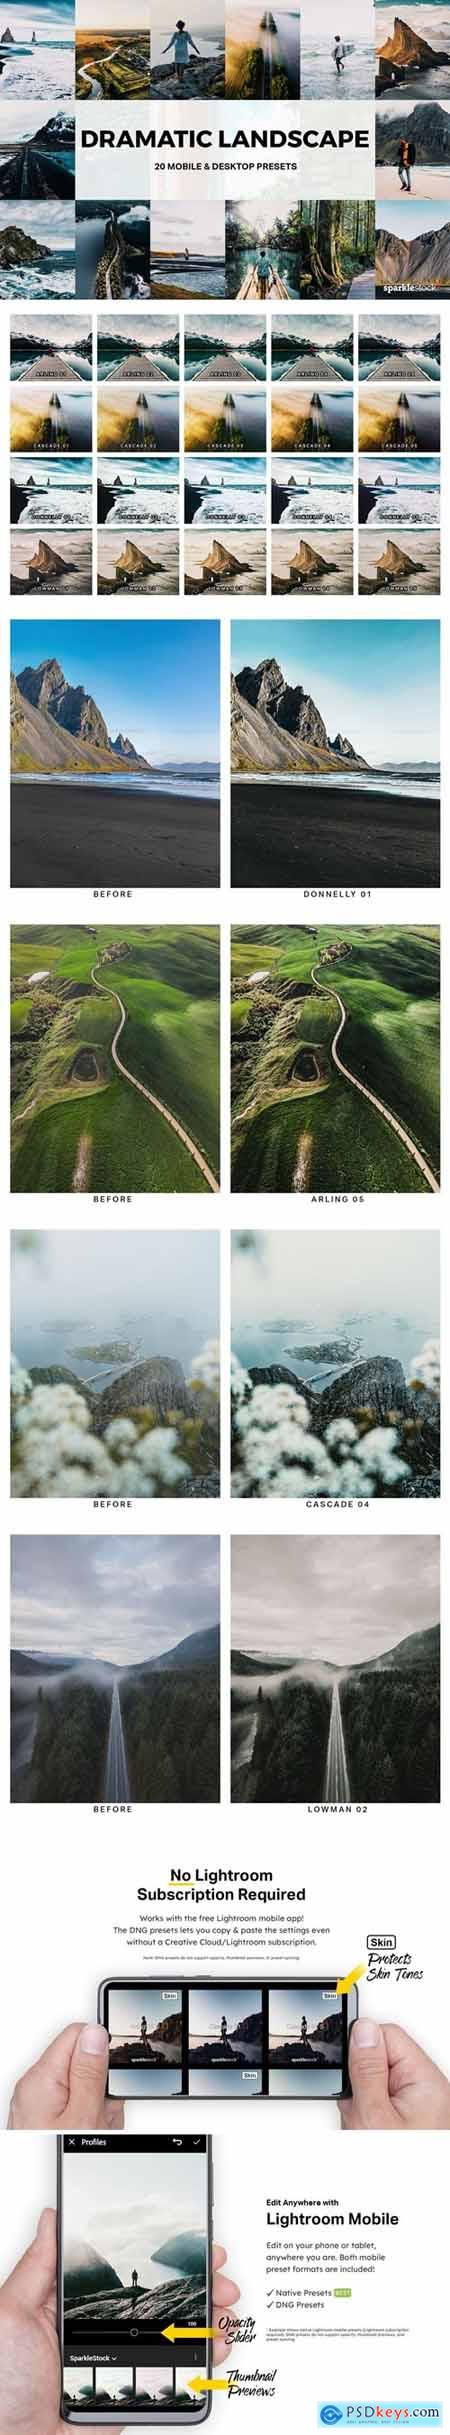 20 Dramatic Landscape Lightroom Presets and LUTs